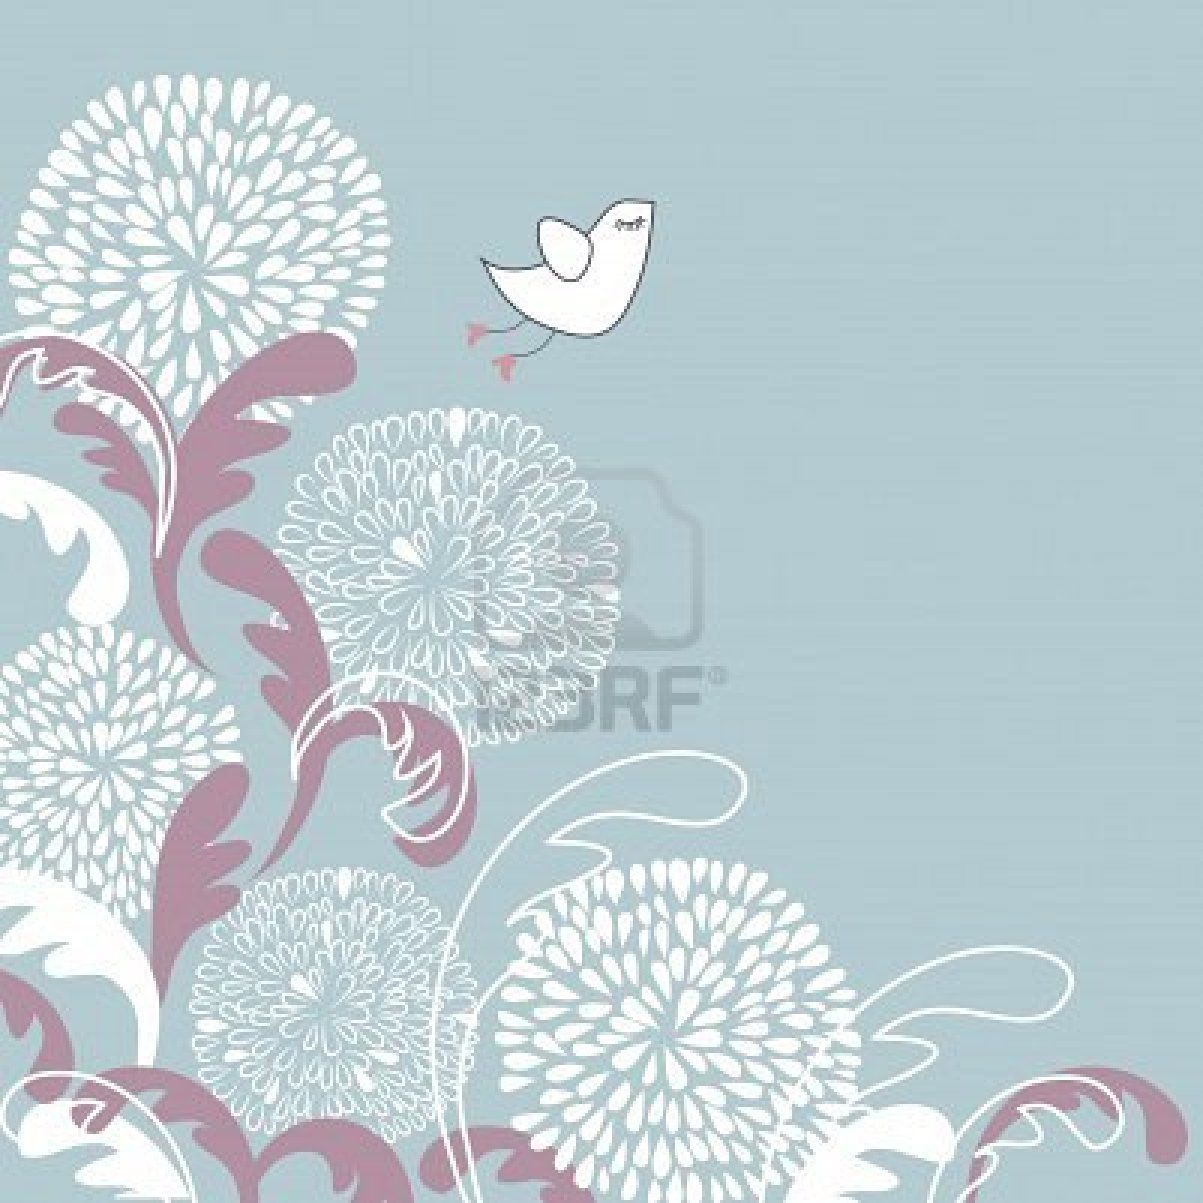 Google Image Result for http://us.123rf.com/400wm/400/400/mcherevan/mcherevan1010/mcherevan101000025/8144069-cute-little-bird-vector-illustration.jpg